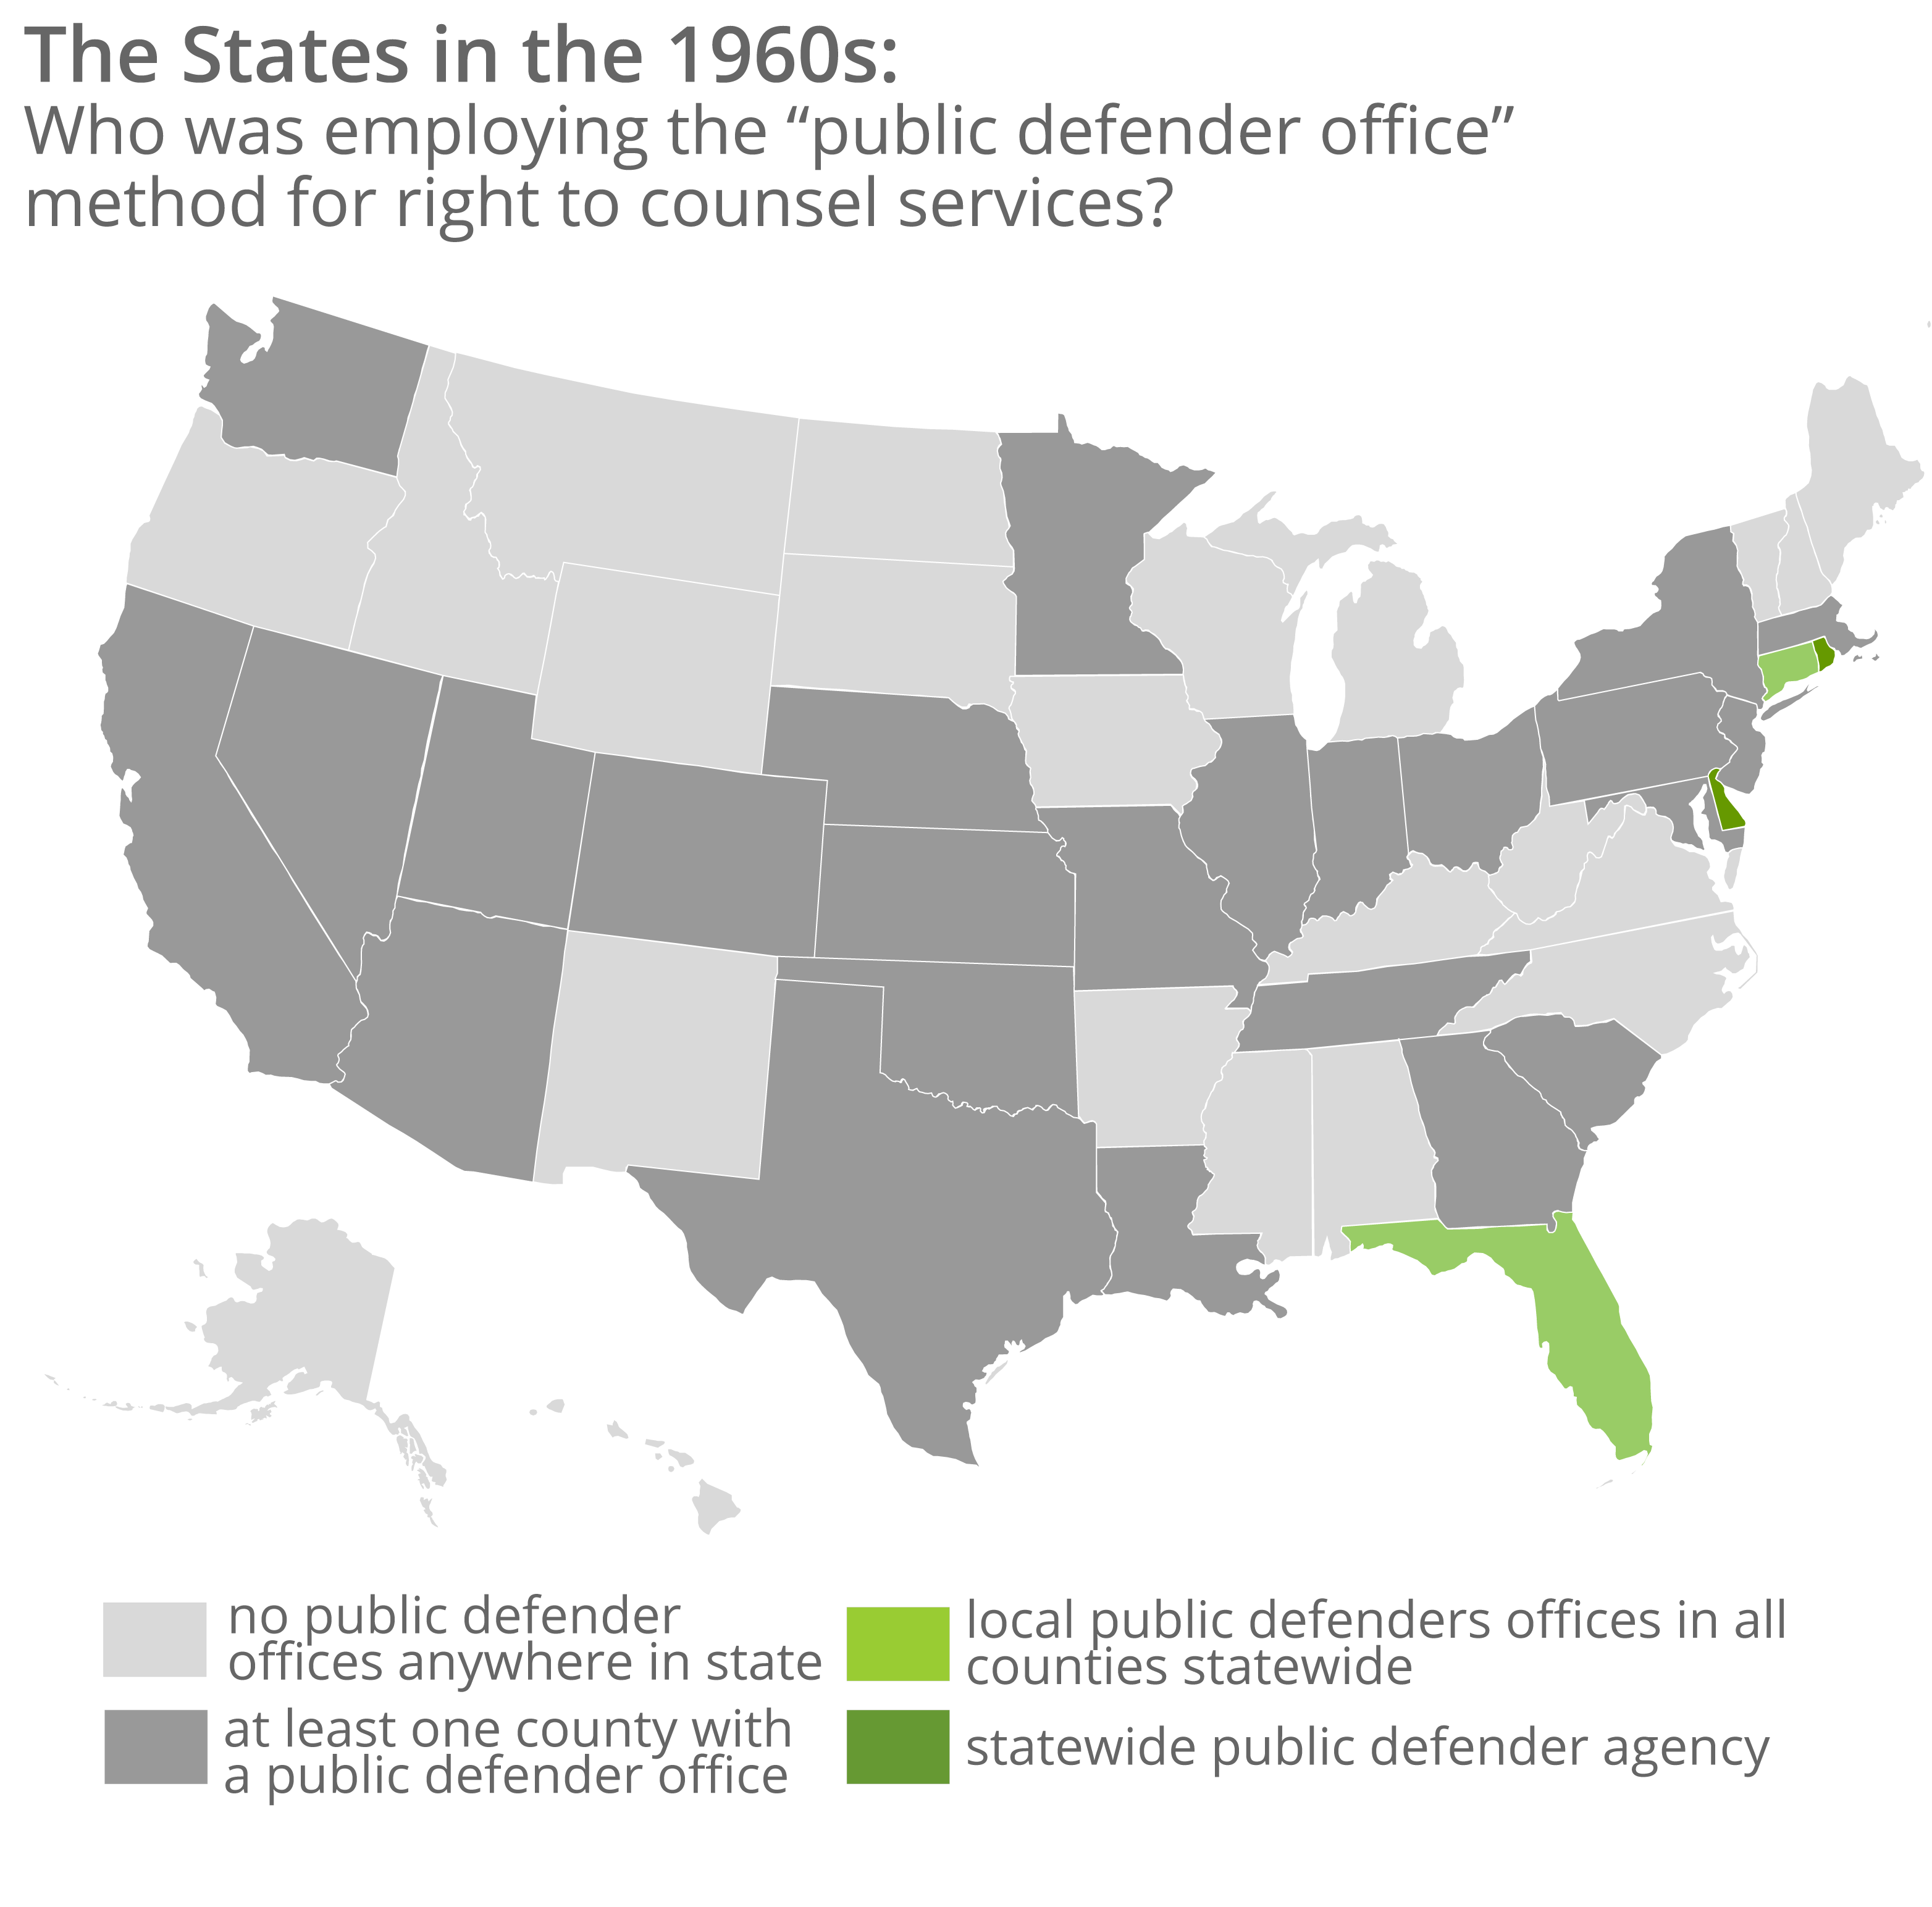 Use of Public Defender Offices in the 1960s